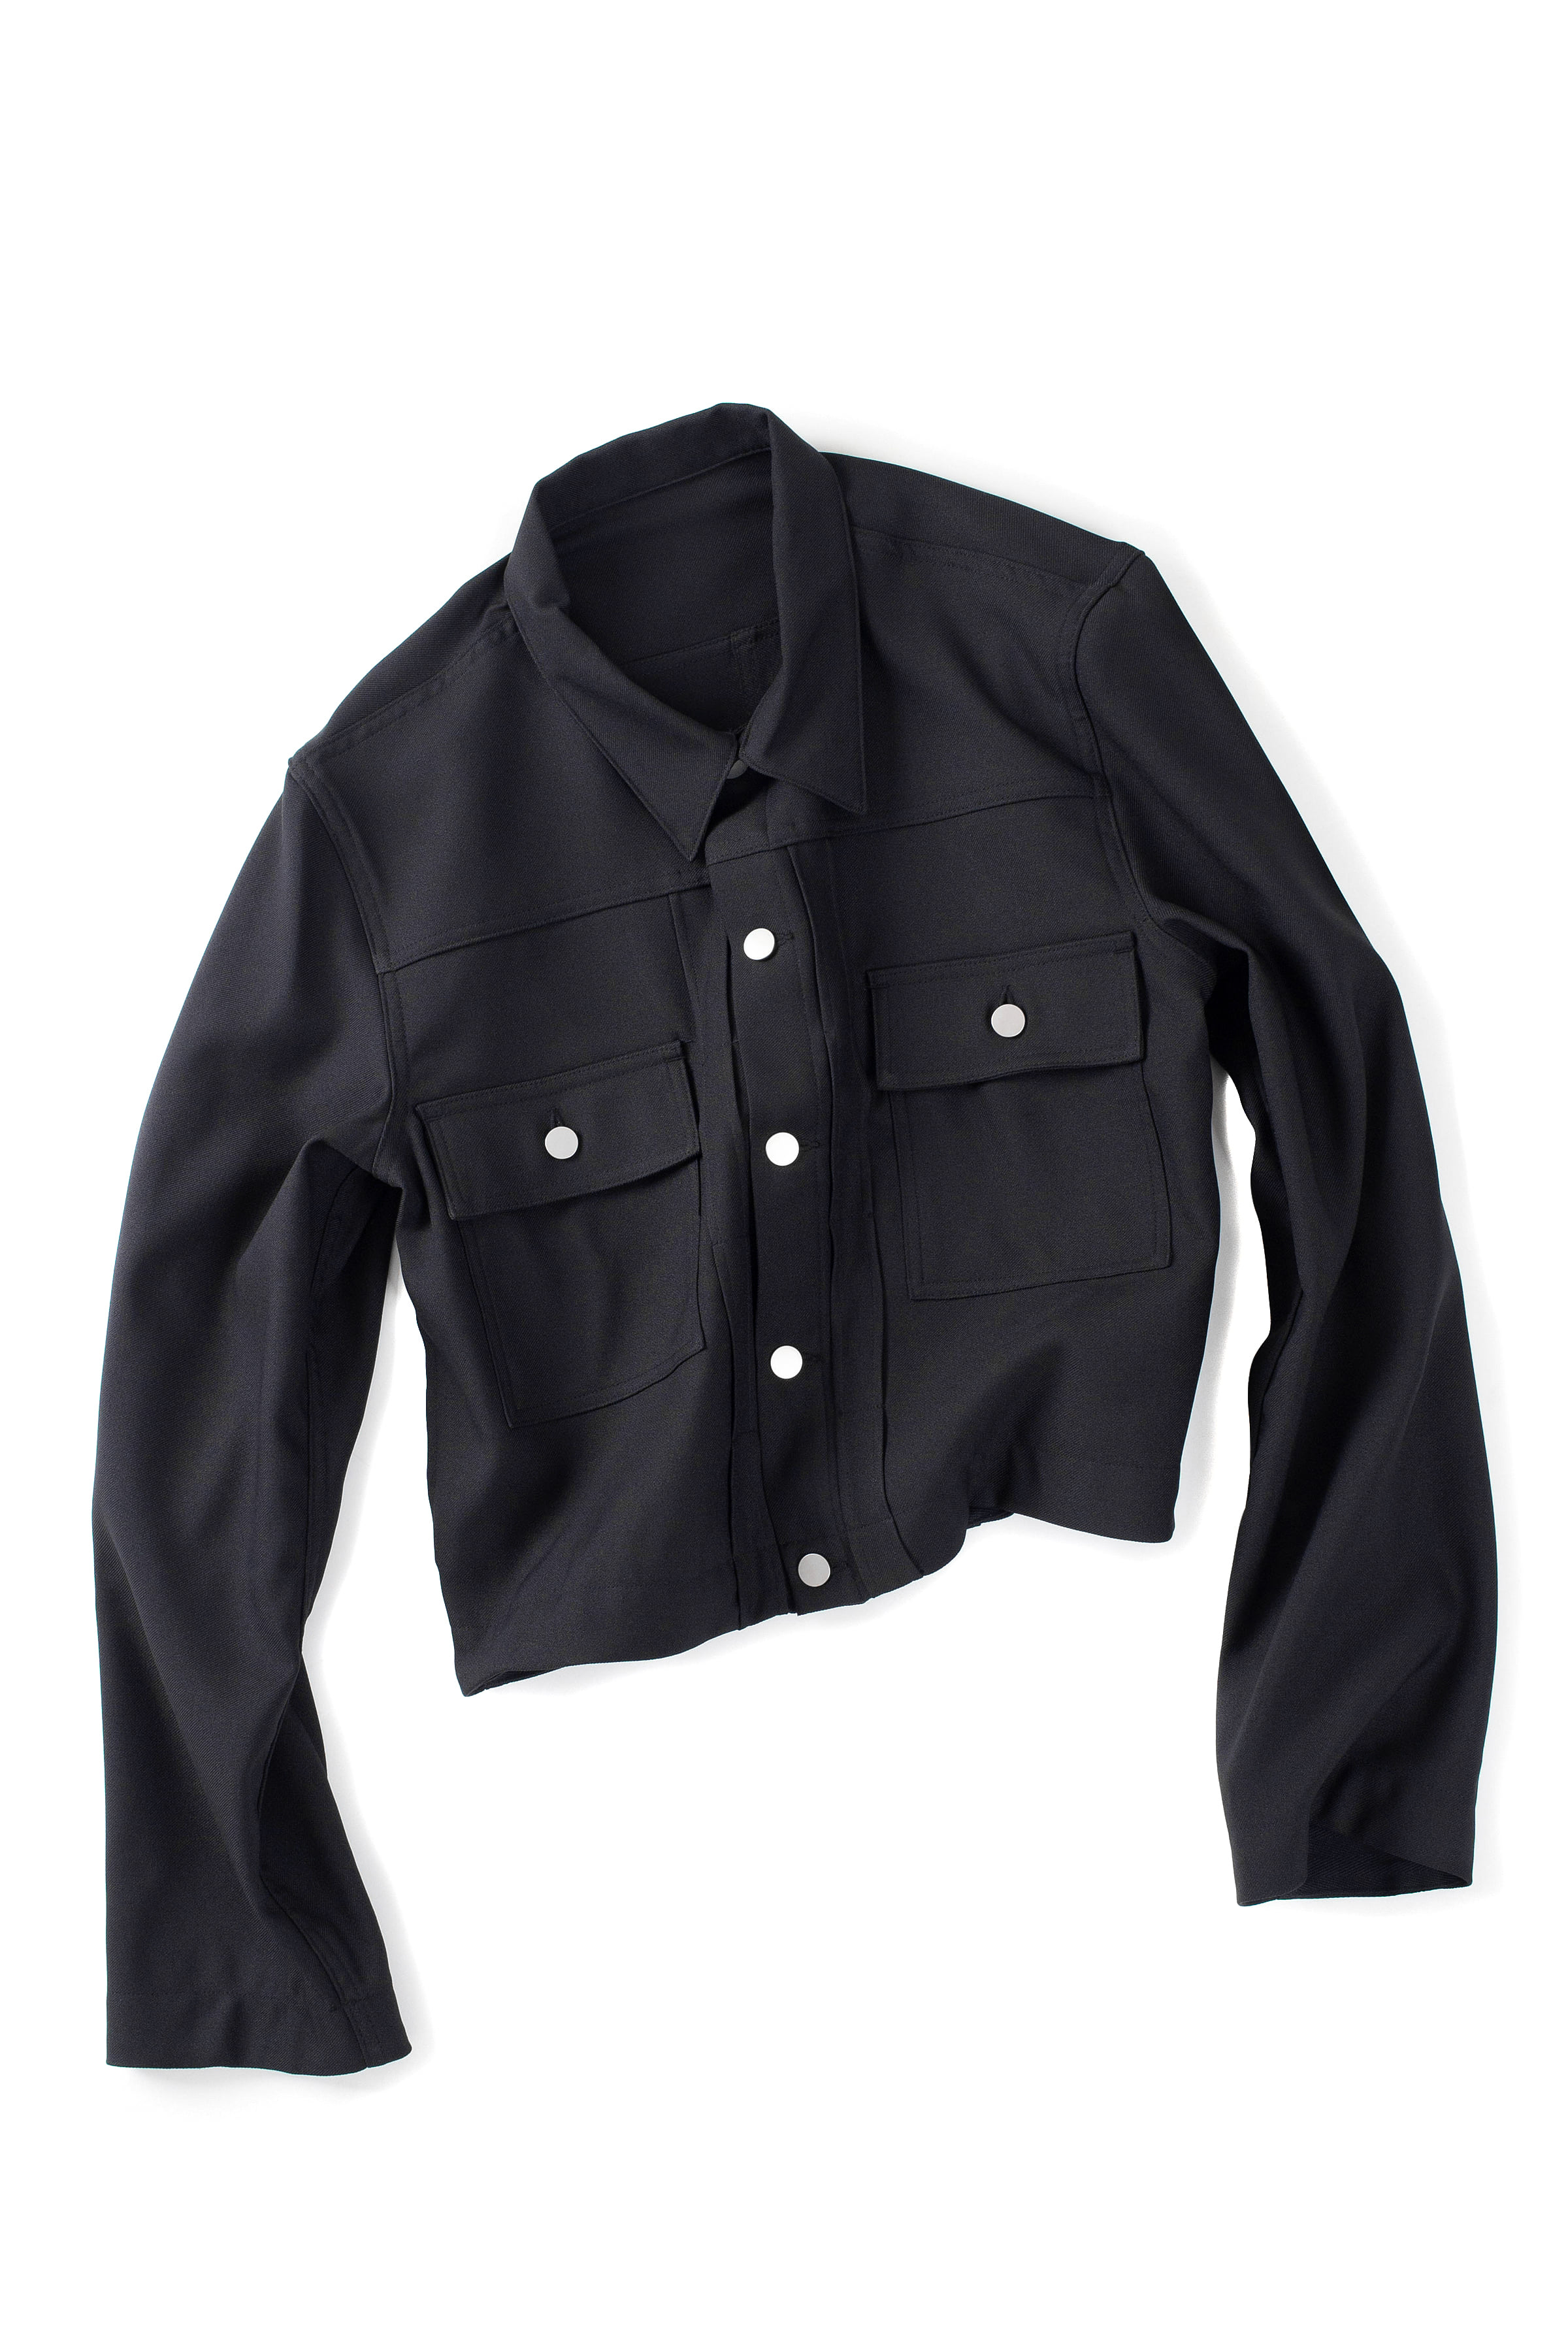 CLAMP : Sta Prest Jacket (Black)